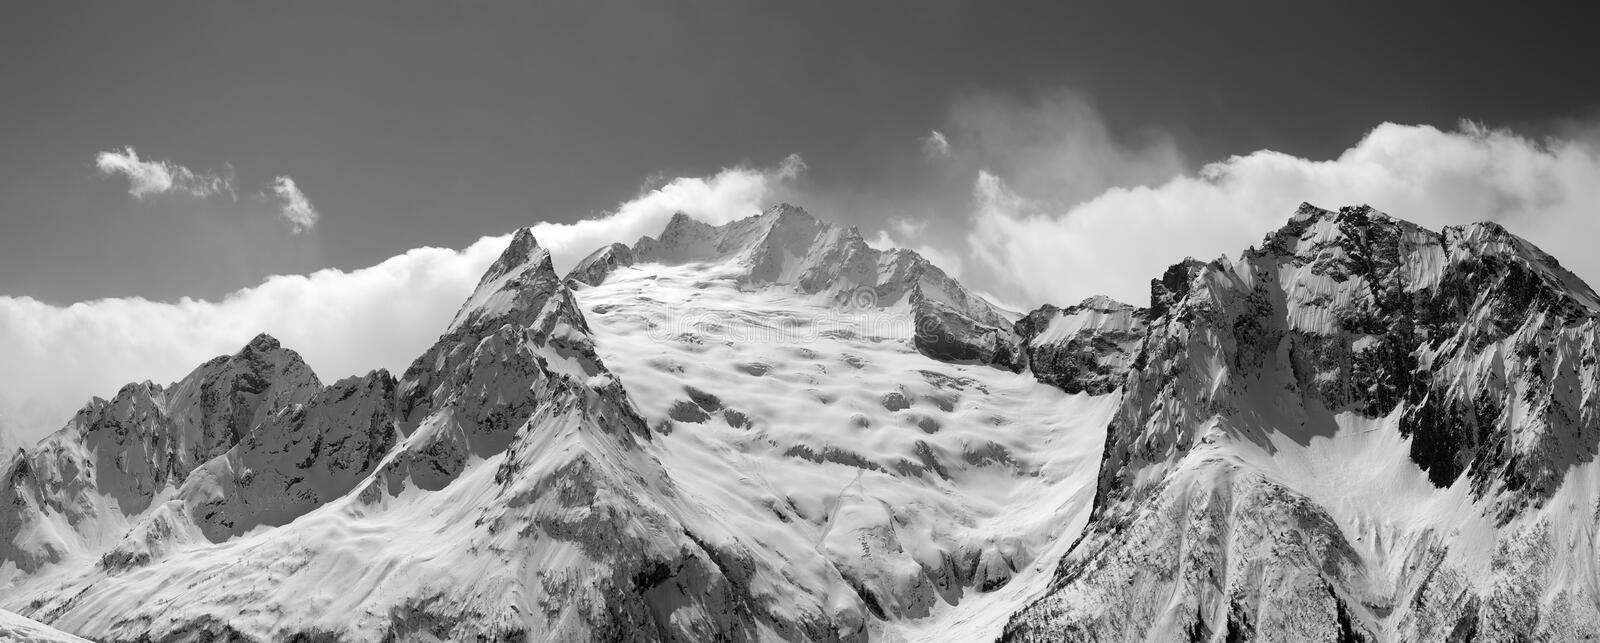 Black and white panorama of snowy glacier and mountain peak in fog. Caucasus Mountains at winter, region Dombay, view from ski slope stock photo